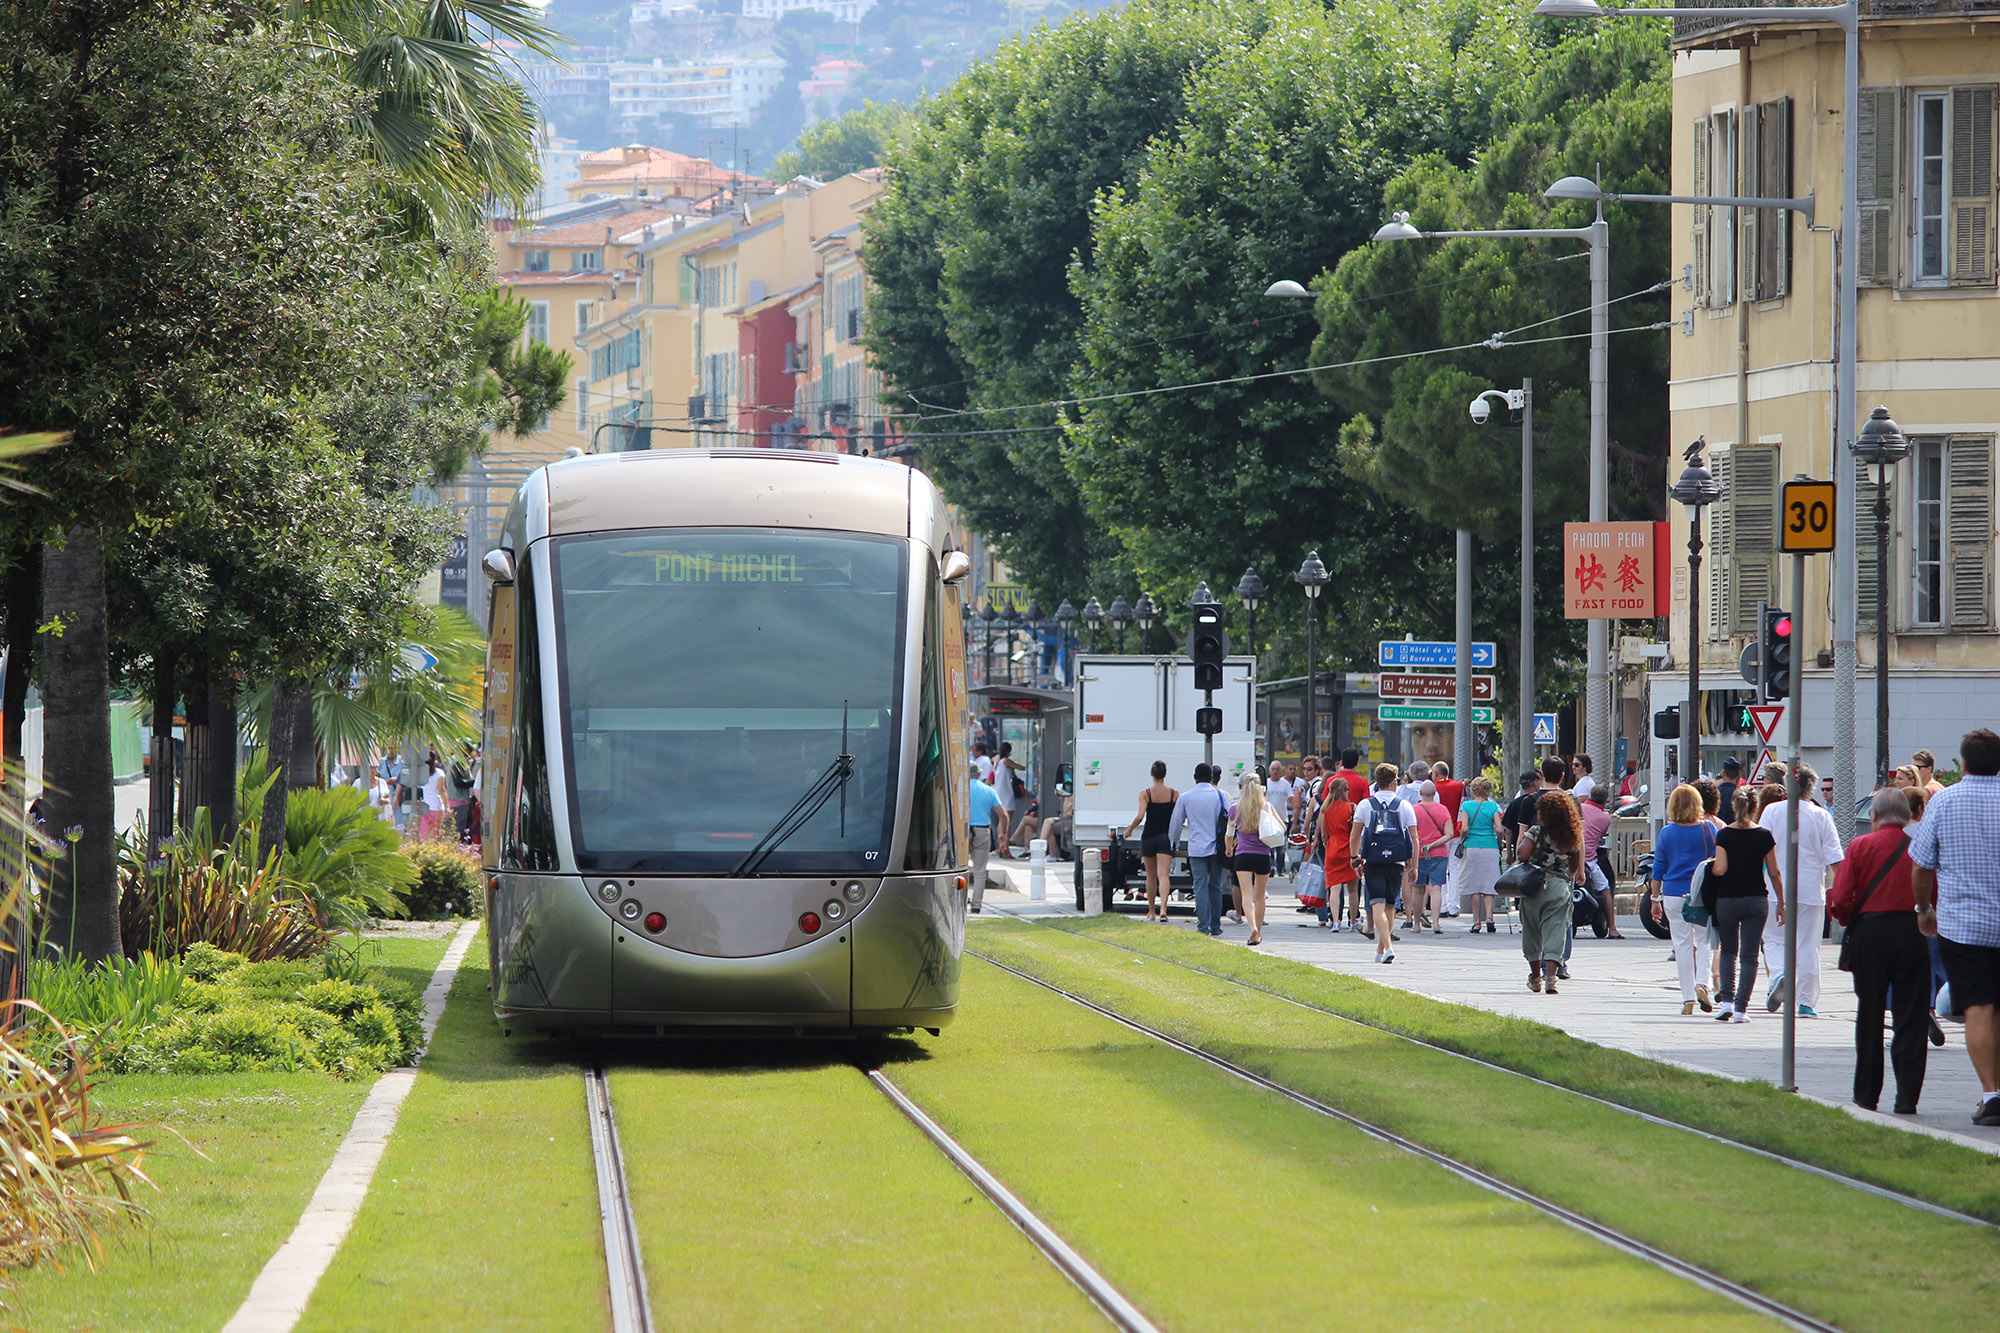 More grass with light rail or more asphalt with trackless trams? © Romti / Adobe Stock